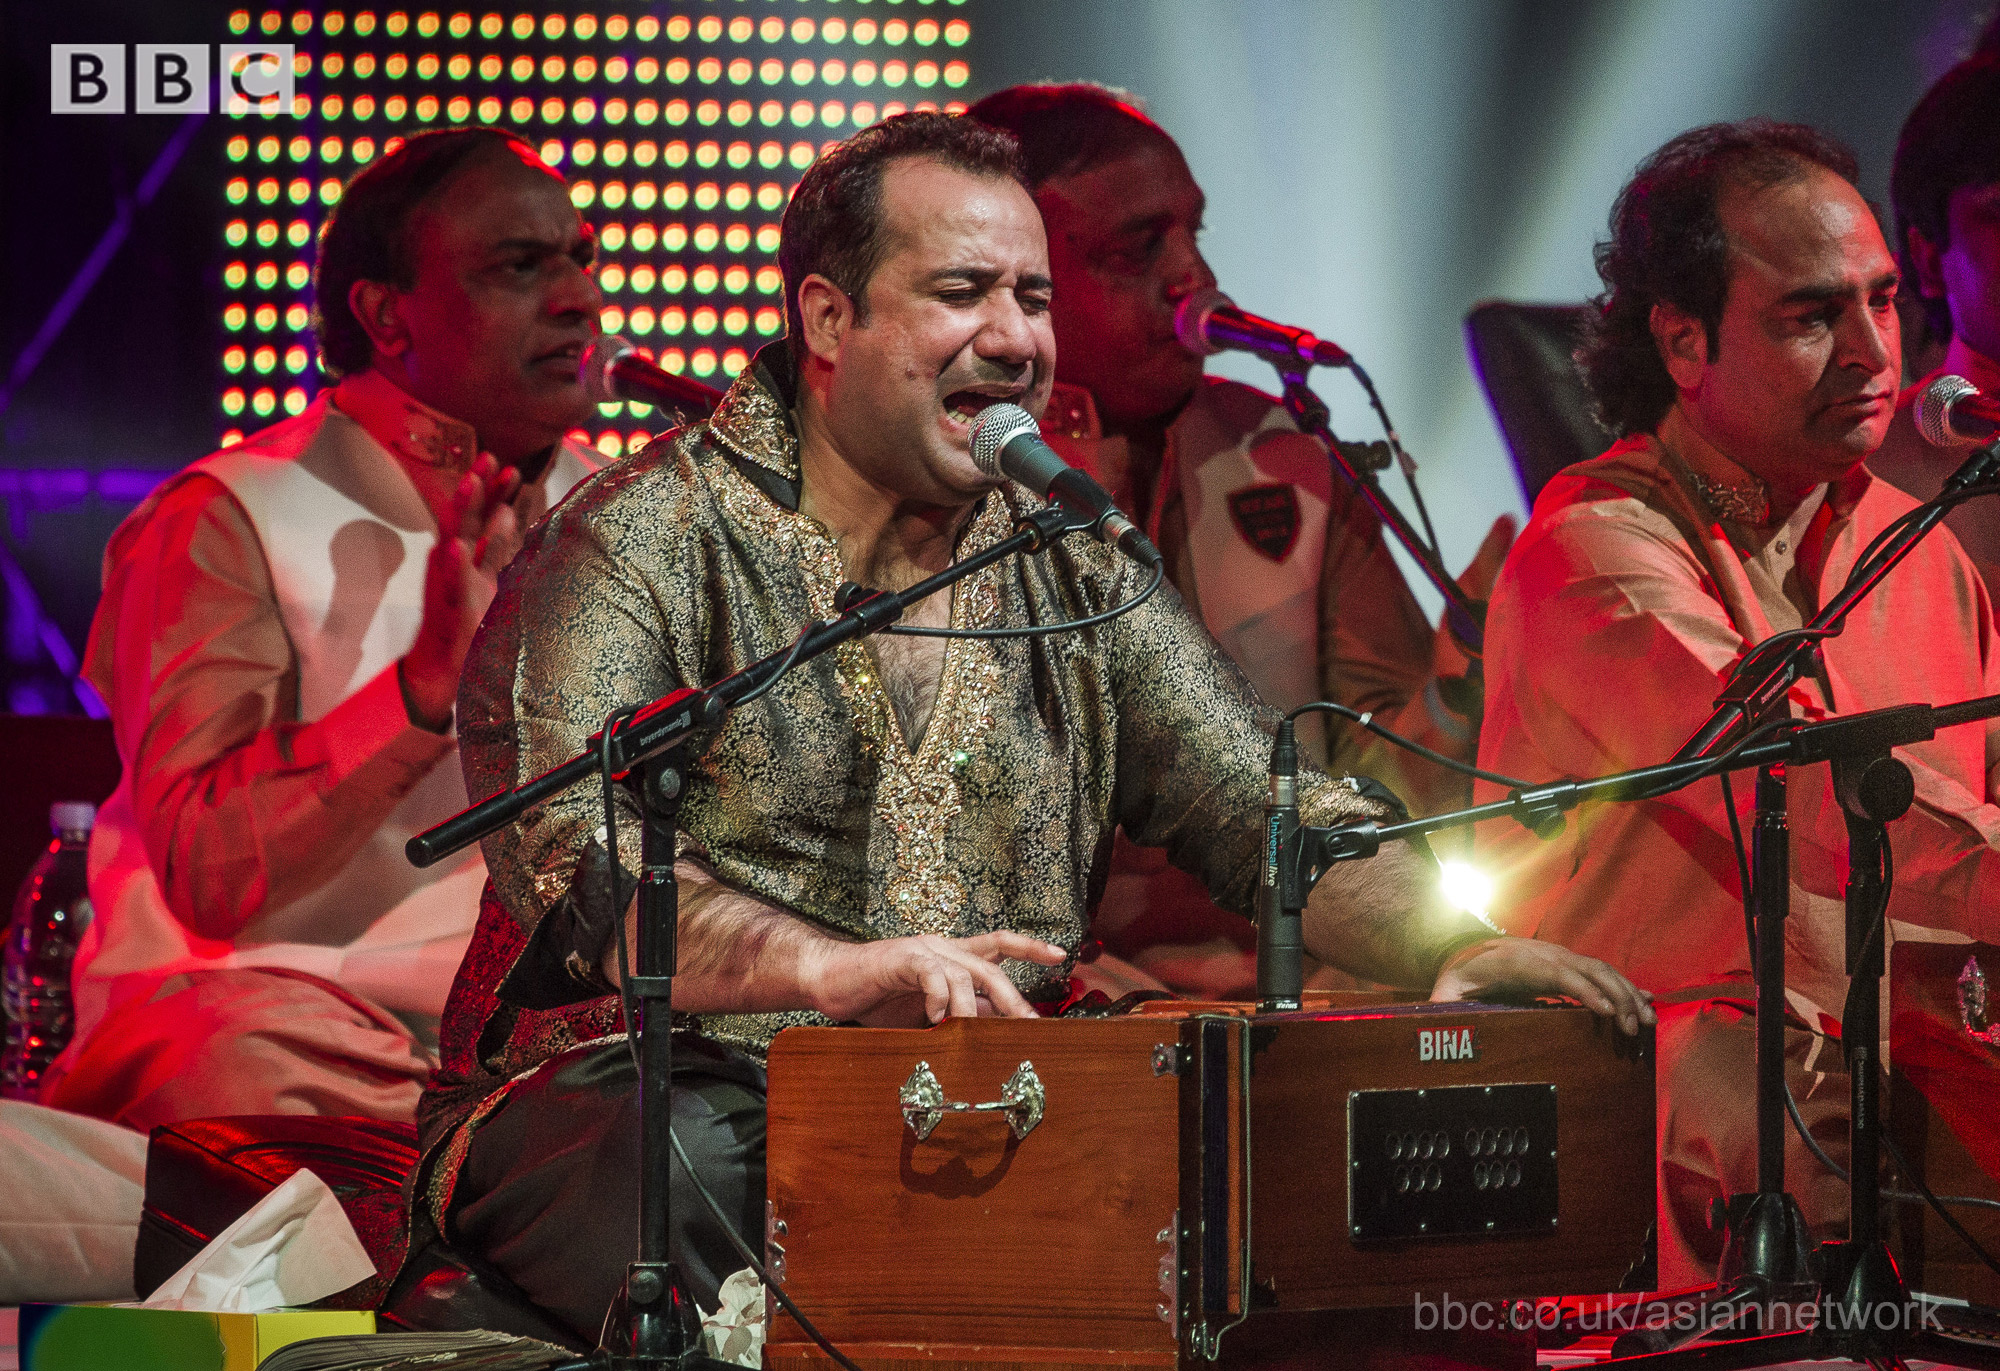 Rahat Fateh Ali Khan BBC Asian Network presents 'Asian Music Stars' on BBC Red Button